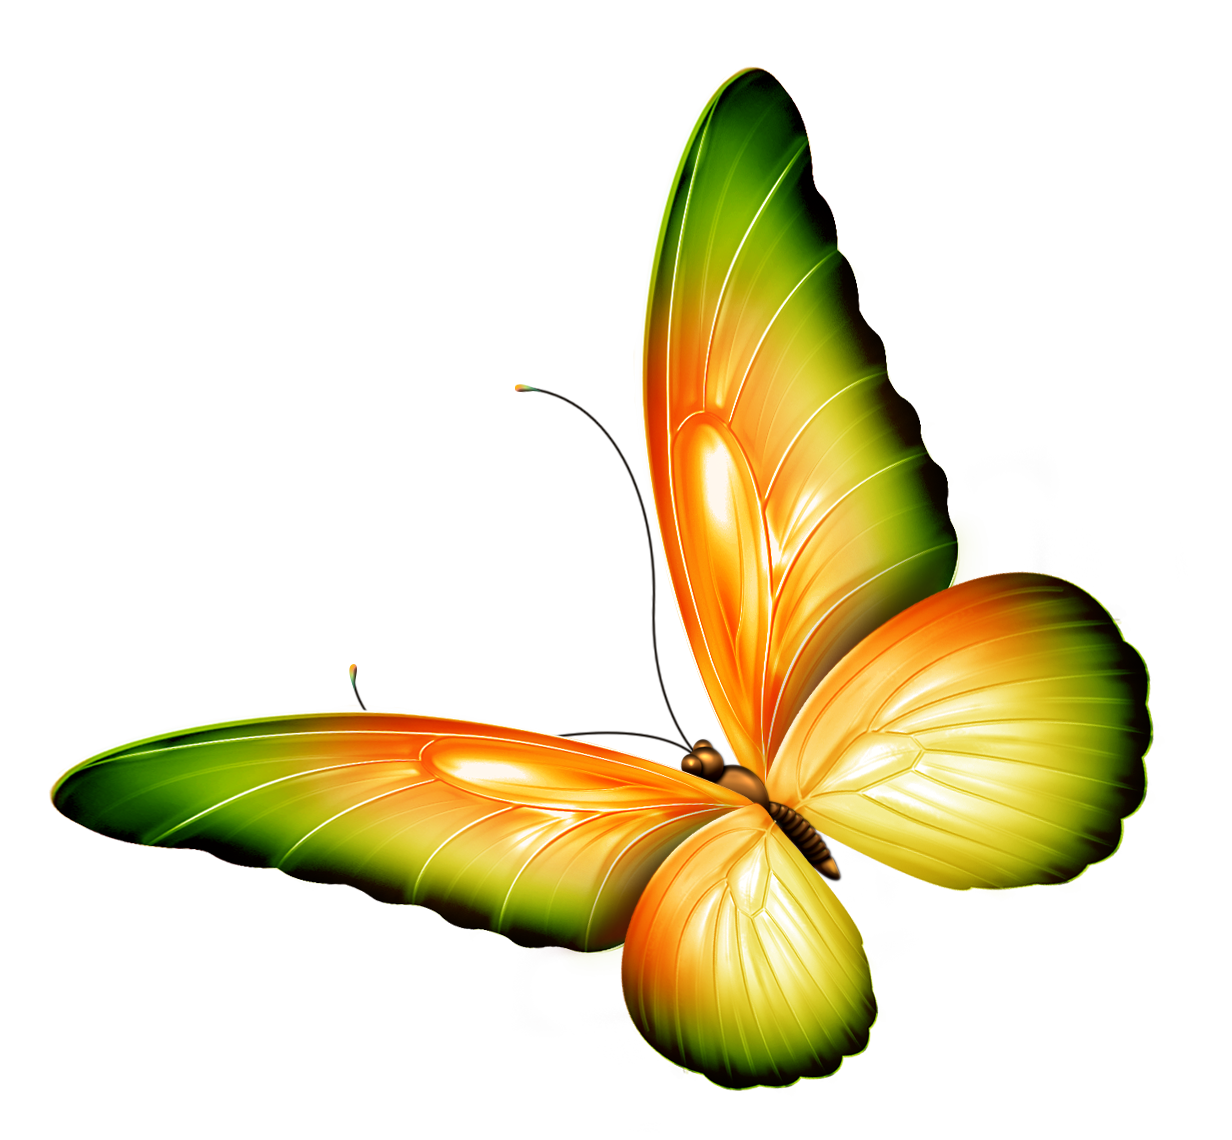 Yellow and green clipart. Butterfly clip art transparent background picture royalty free stock